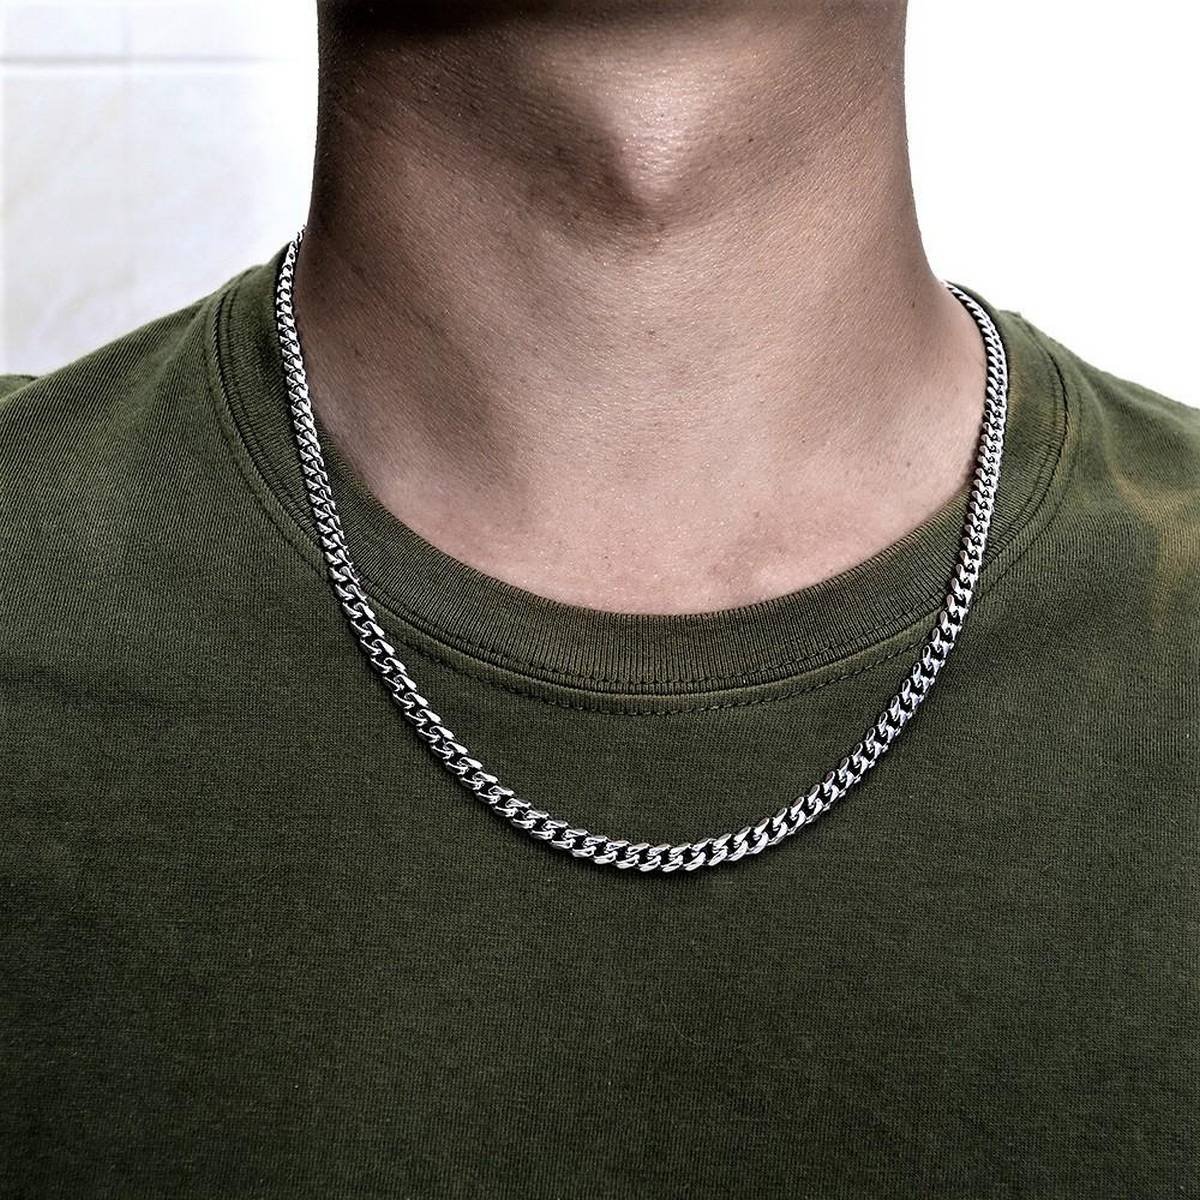 Silver Stainless Steel Thin Cuban Chain for Men/Boys Neck - High Quality Jewelry for Men